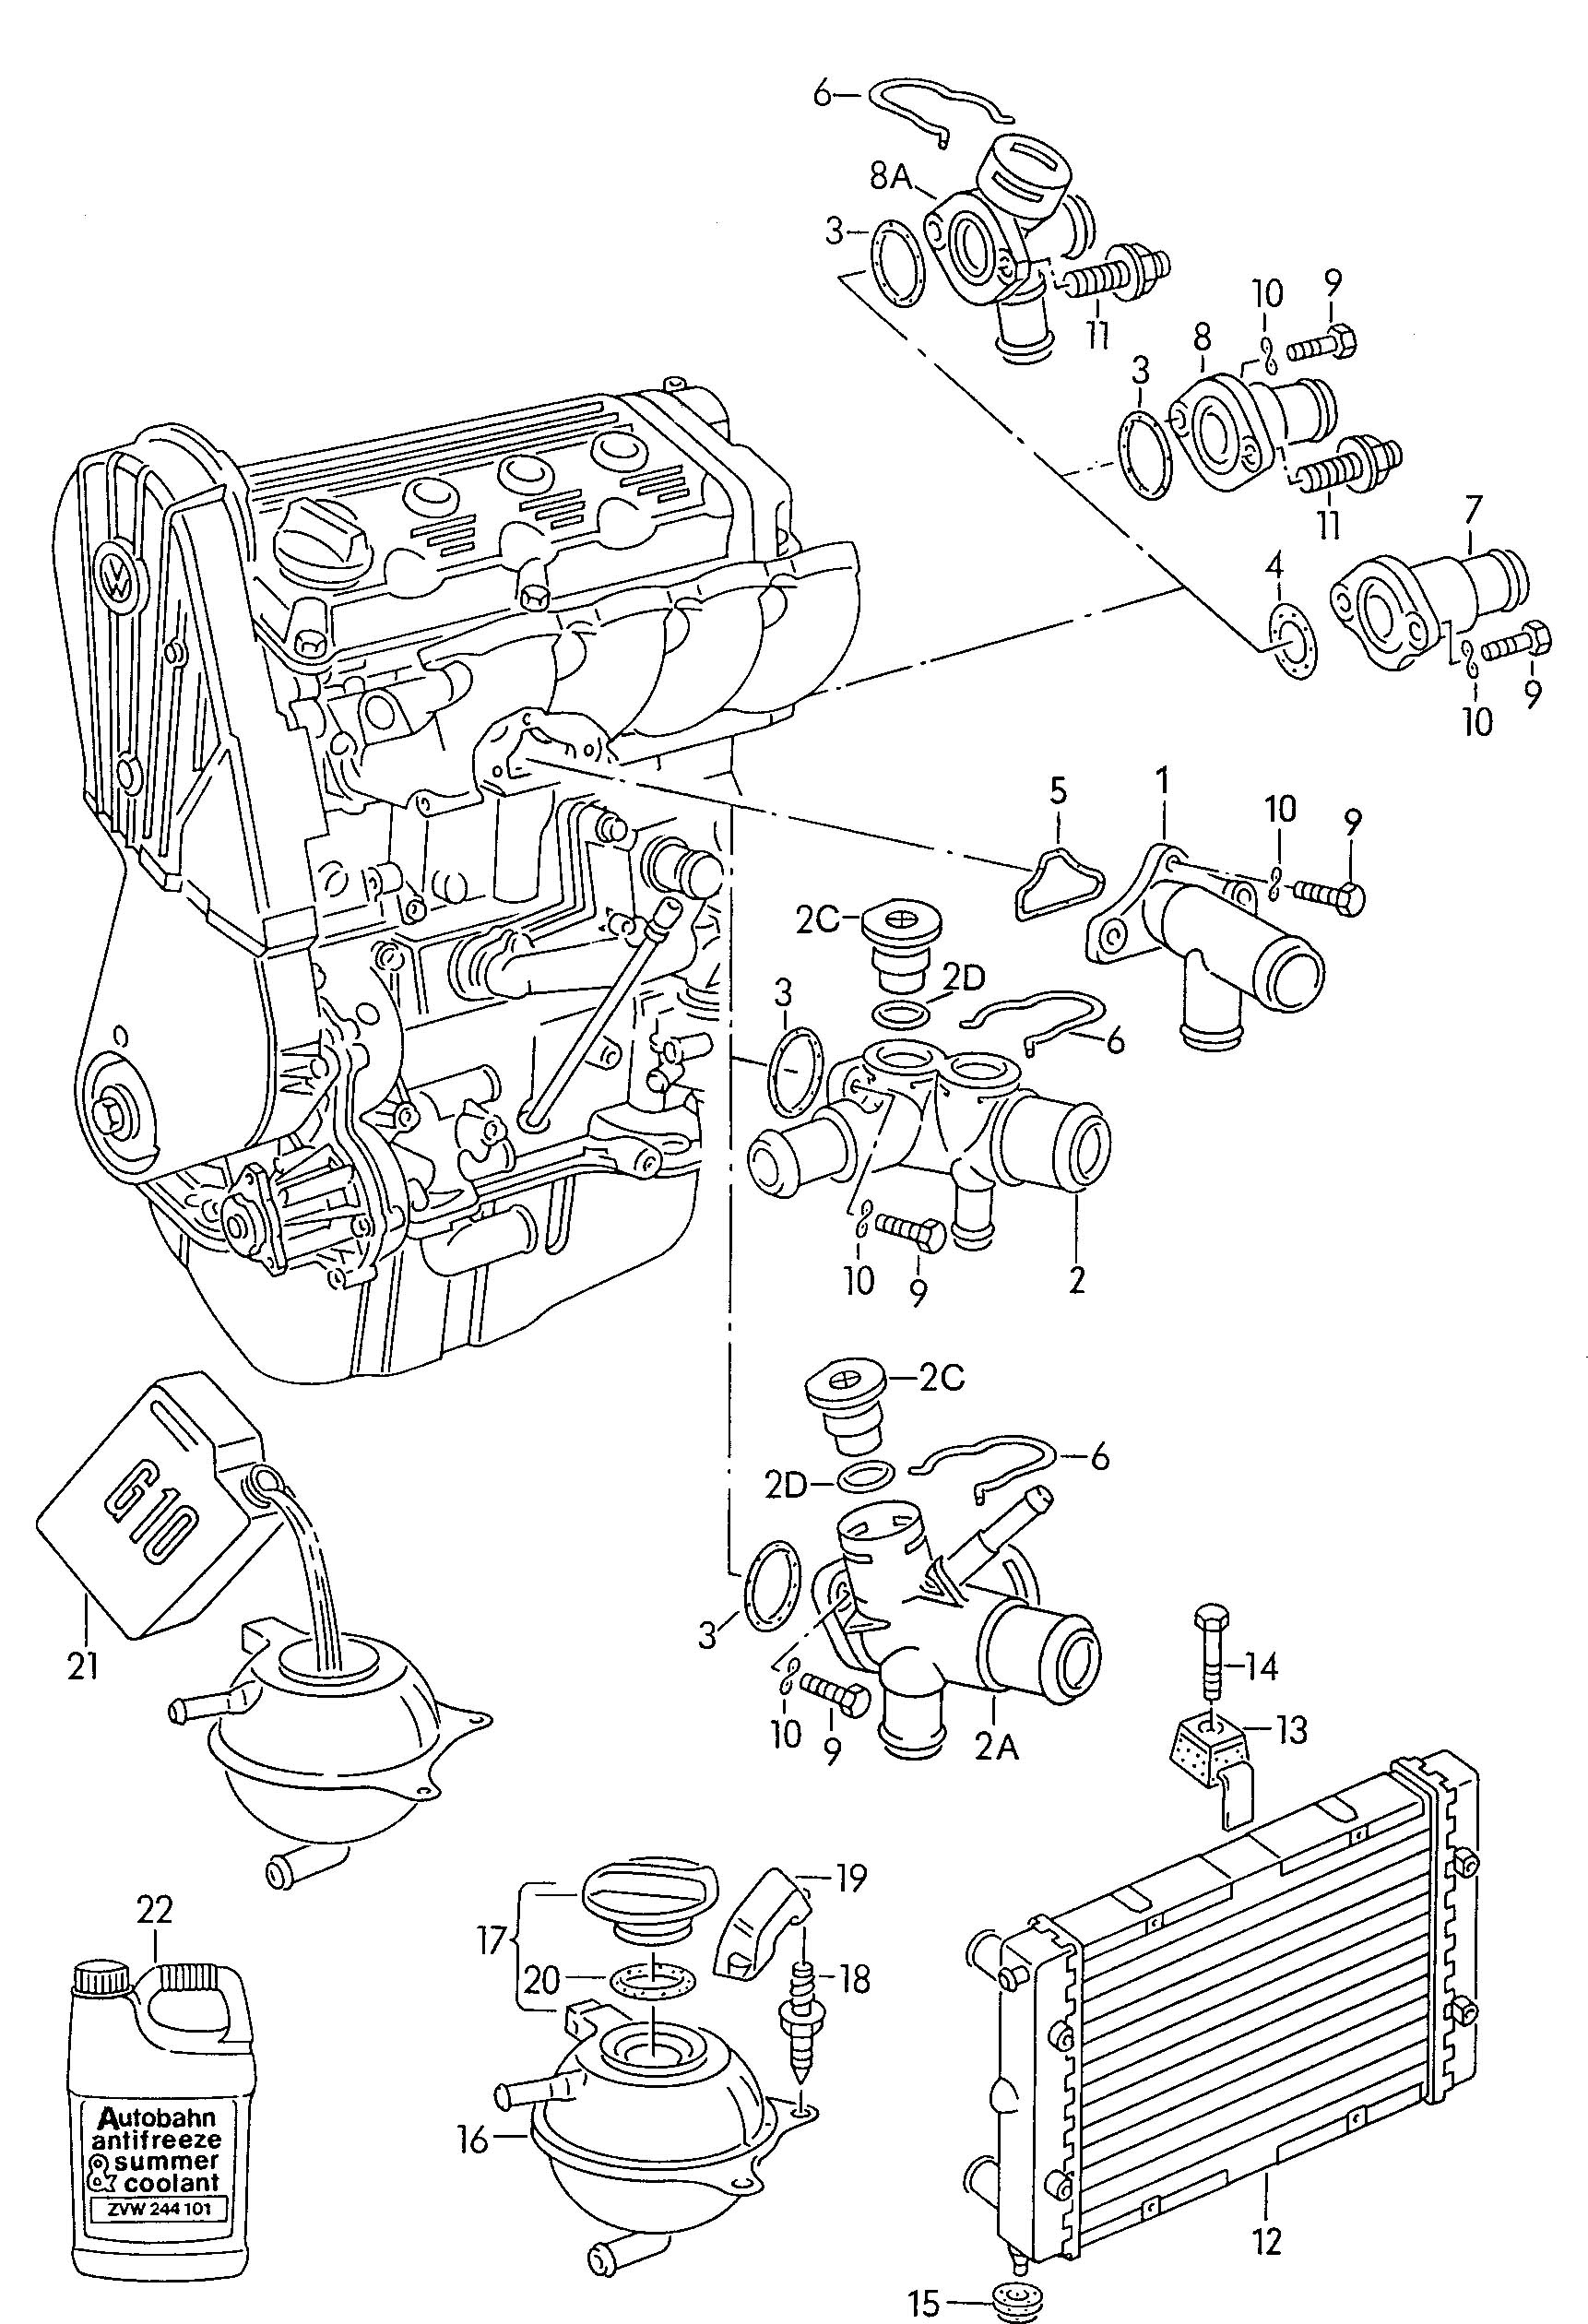 cj5 1974 jeep cj5 wiring diagram further 1979 jeep wiring diagram